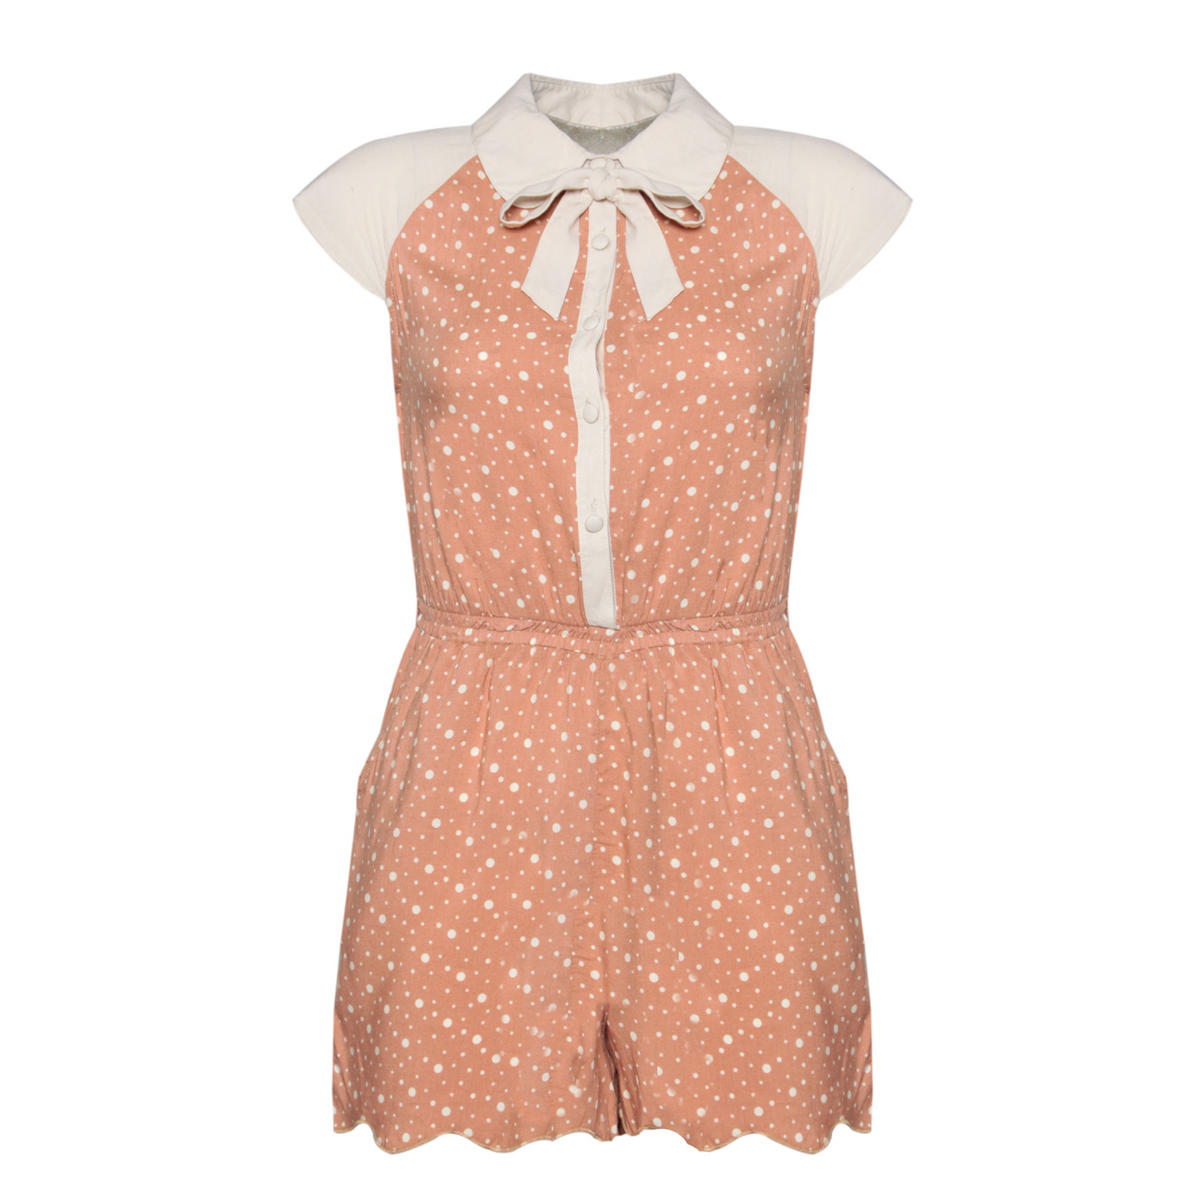 Beige Polka Dot Peter Pan Collar Playsuit Preview